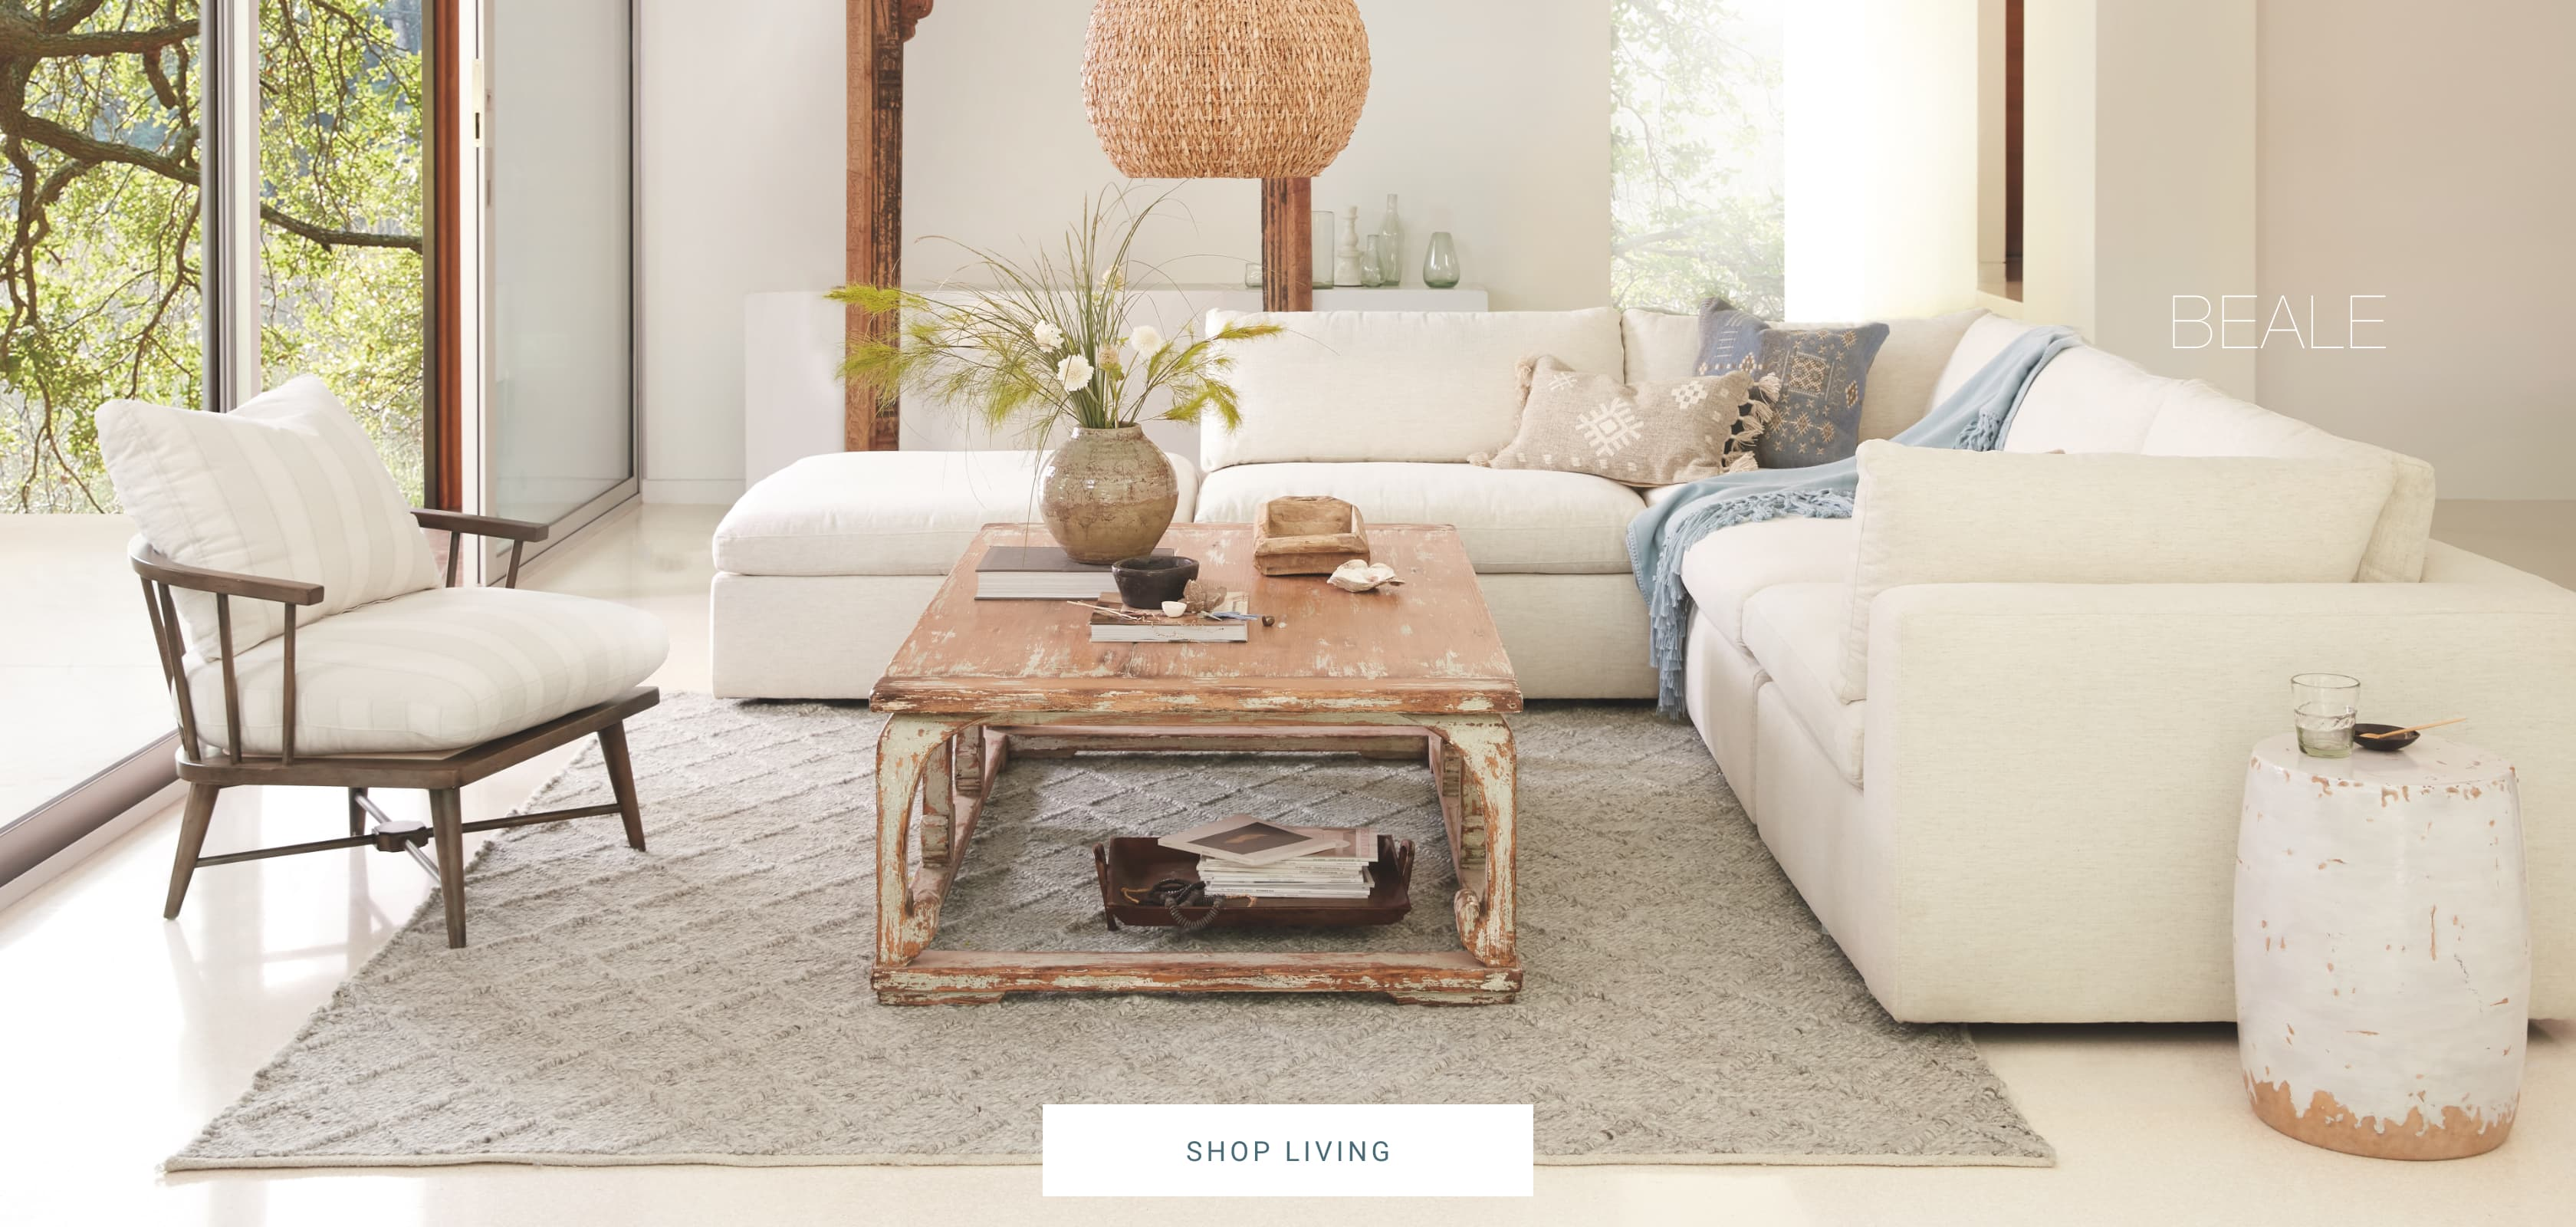 Save Up to 50% on Living Room Furniture